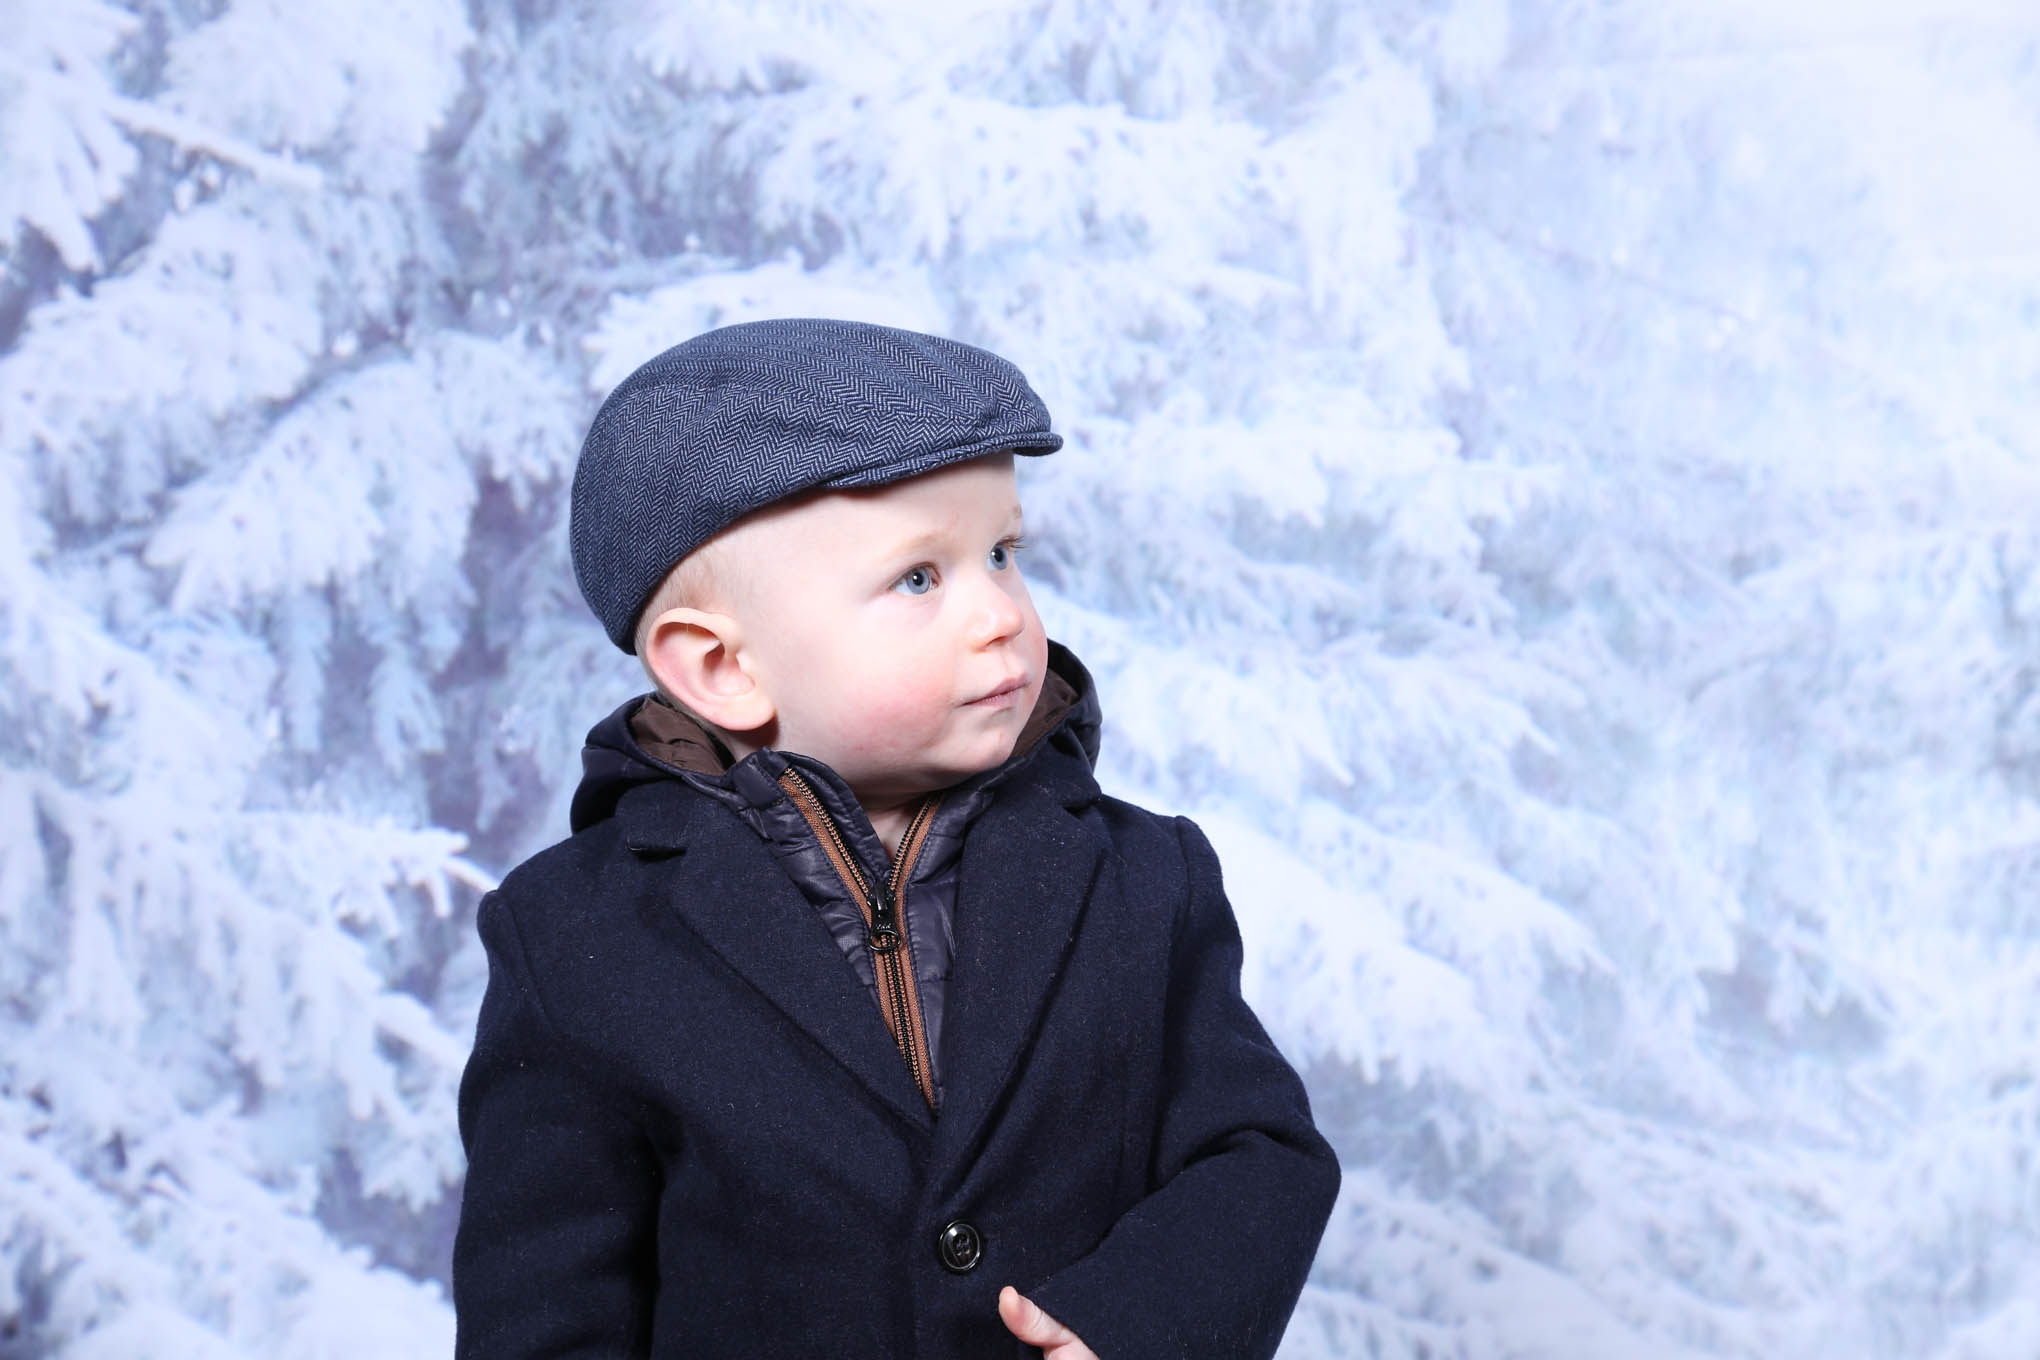 Child with flat cap on